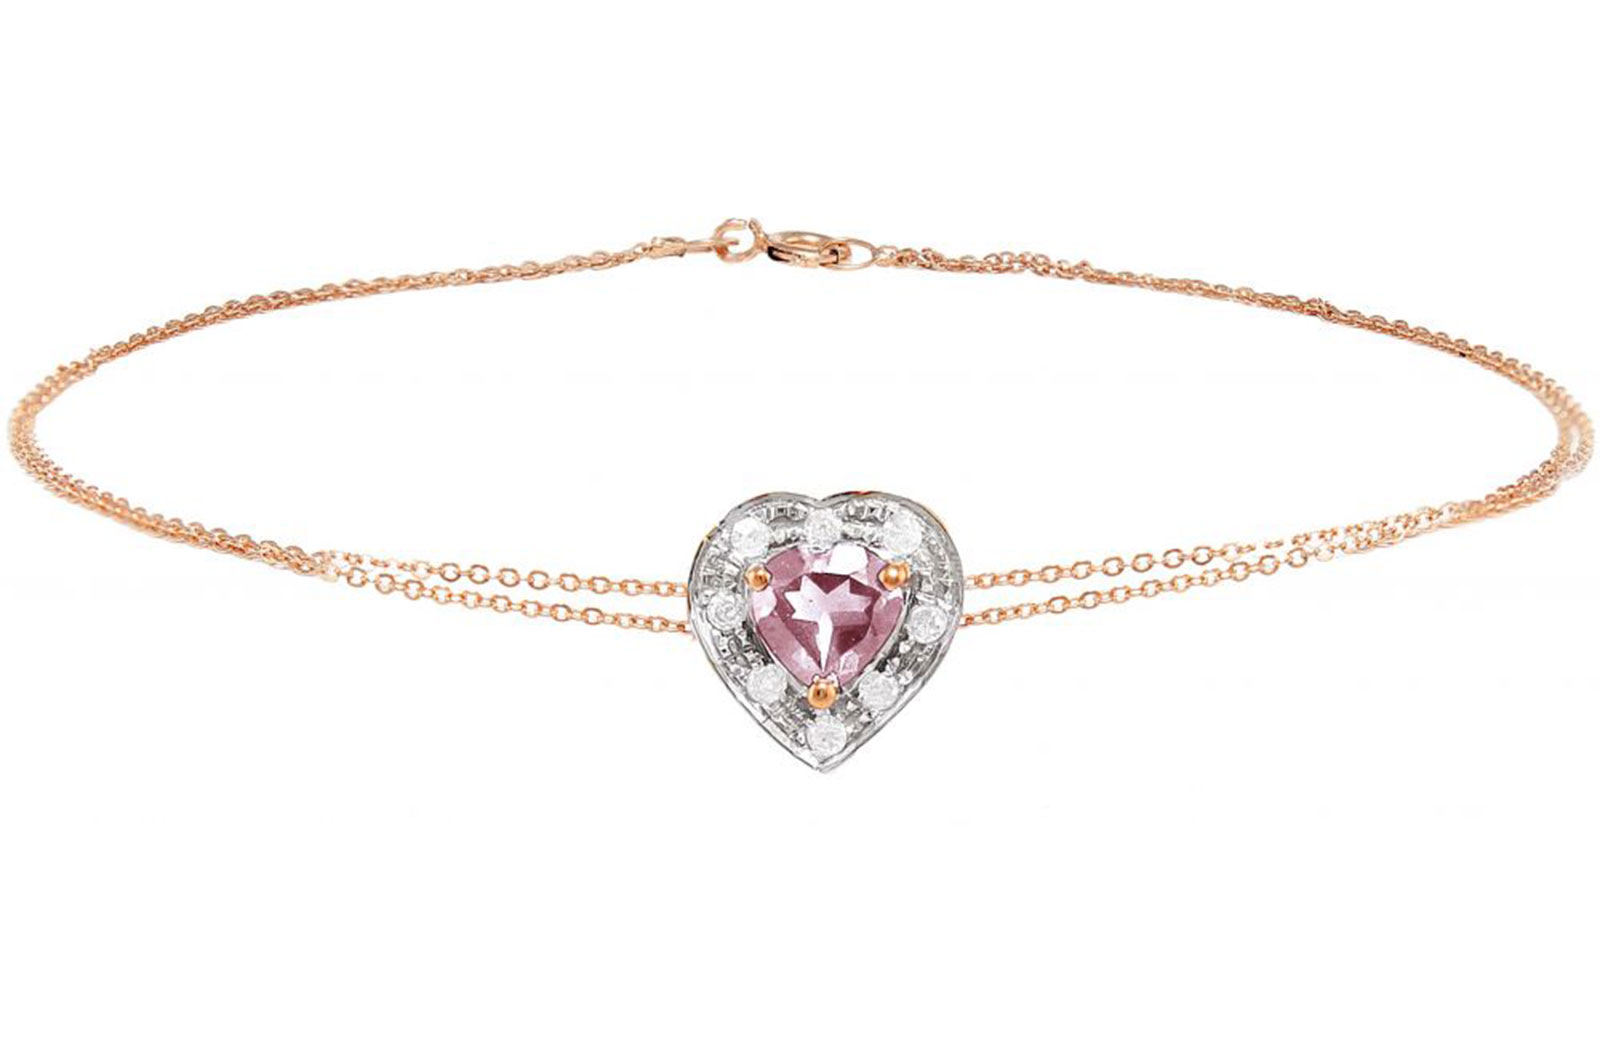 Vera Perla 18K Rose and White Gold and 0.08cts  Diamonds and 5mm Genuine Rose Quartz Heart Bracelet